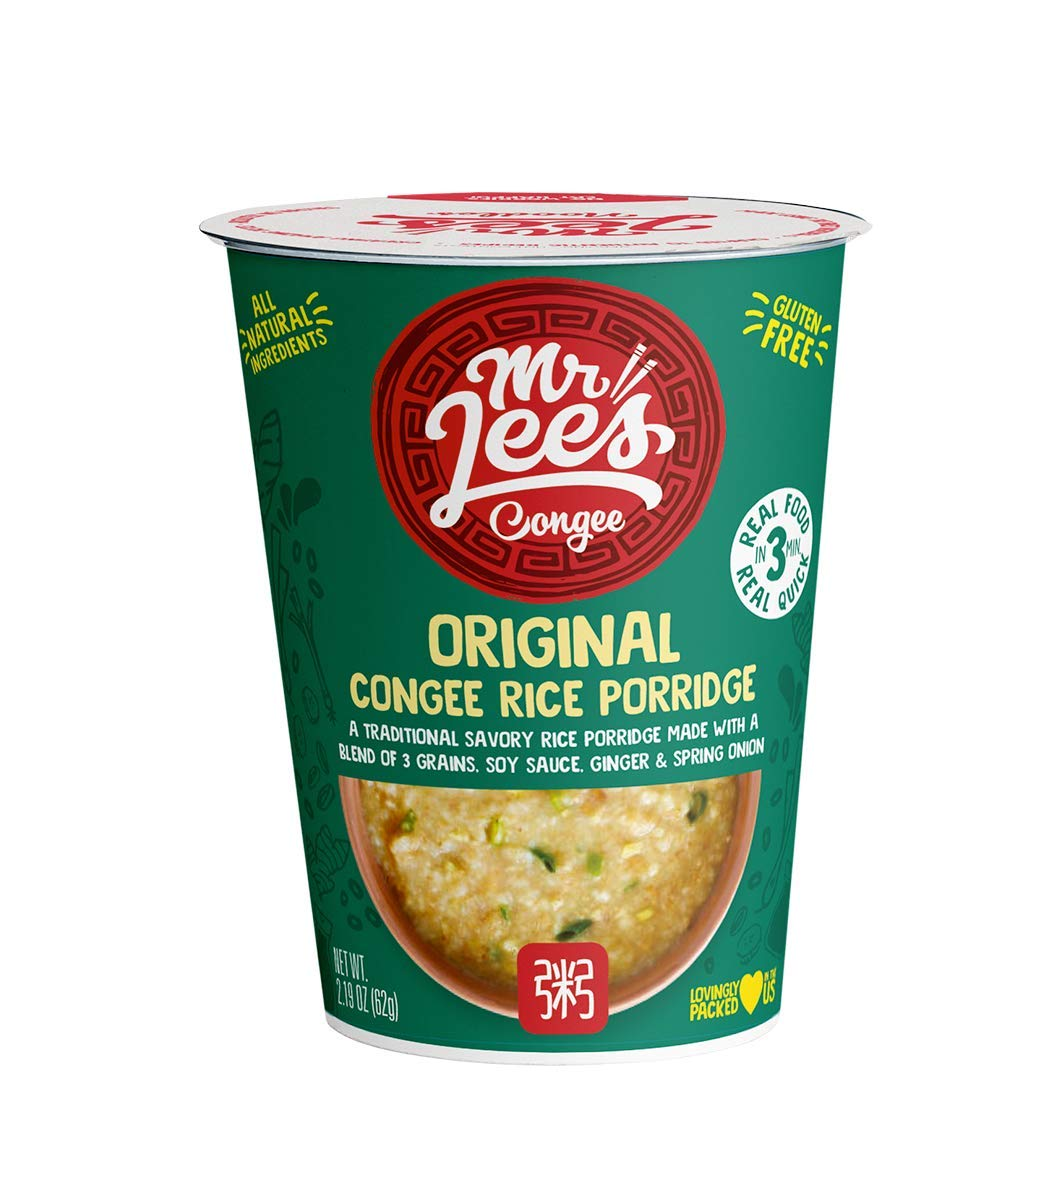 Mr Lee's Congee Low Fat Low Sugar 8 x Instant Savoury Rice Porridge with Soy Sauce, Ginger & Spring Onion. Gluten Free. Made from All Natural Ingredients.